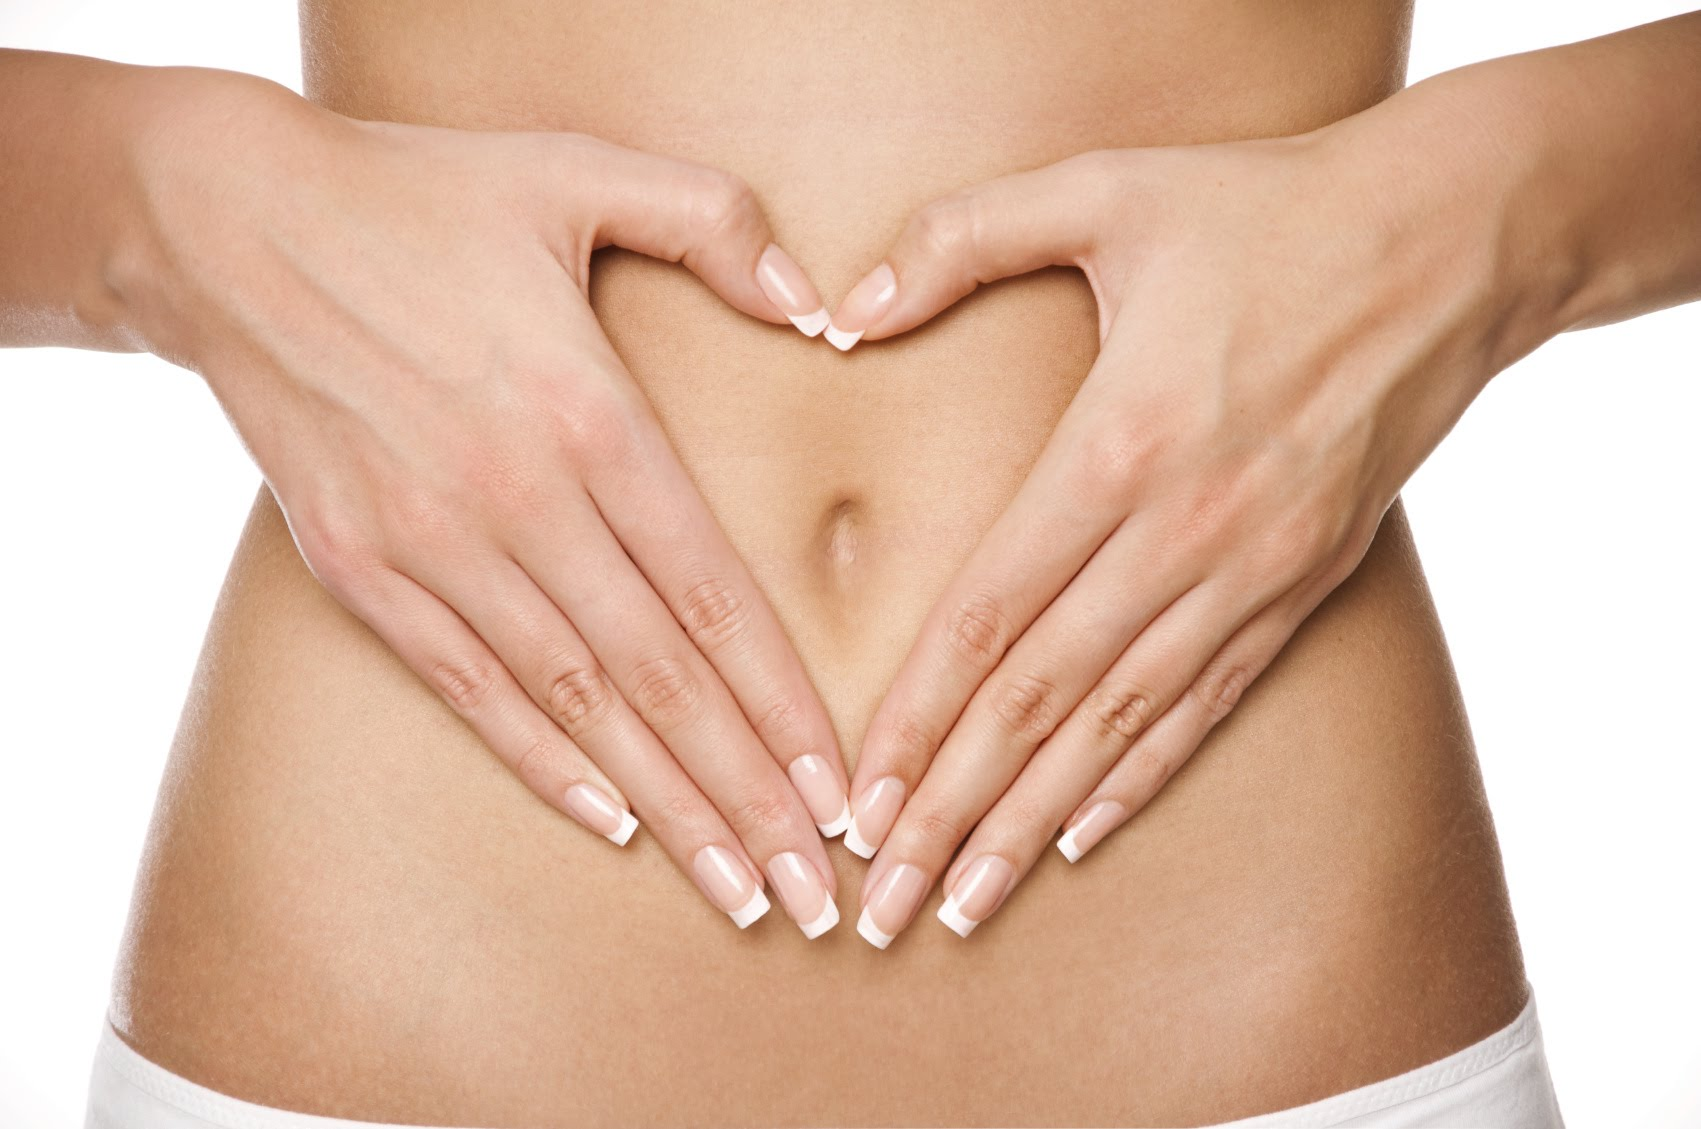 Acupuncture can help improve digestion